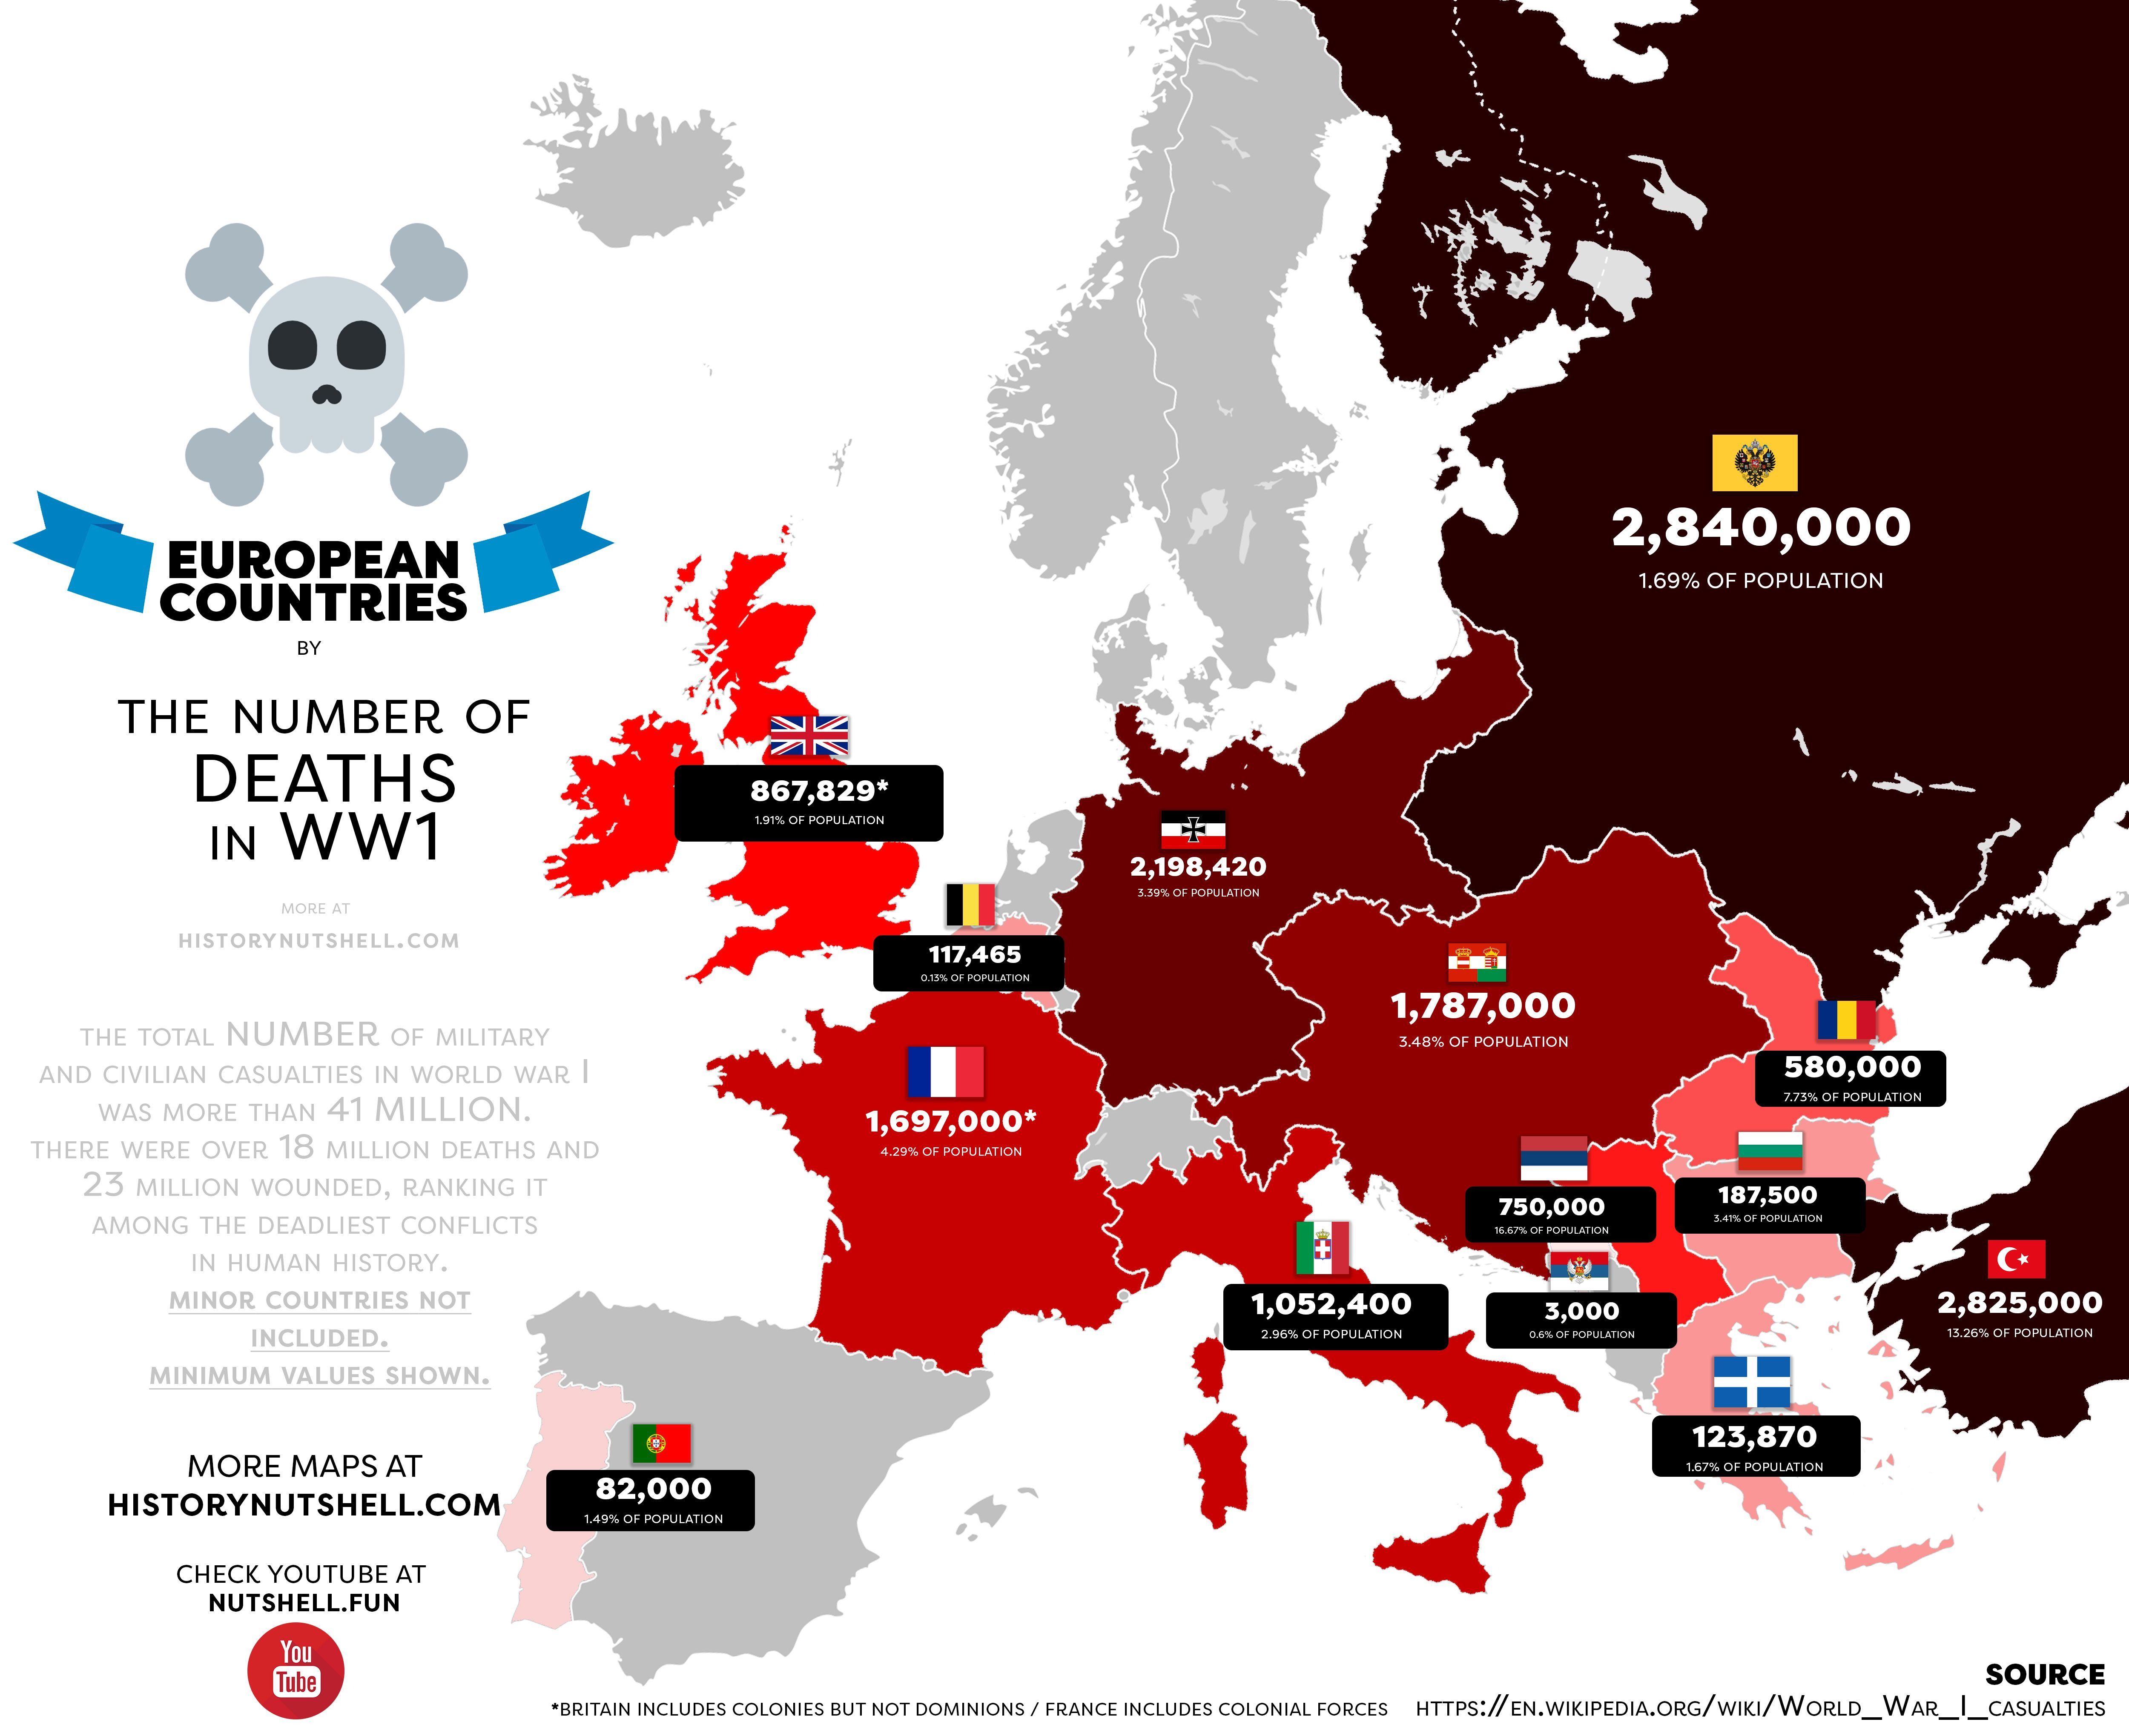 S In Ww1 By European Country